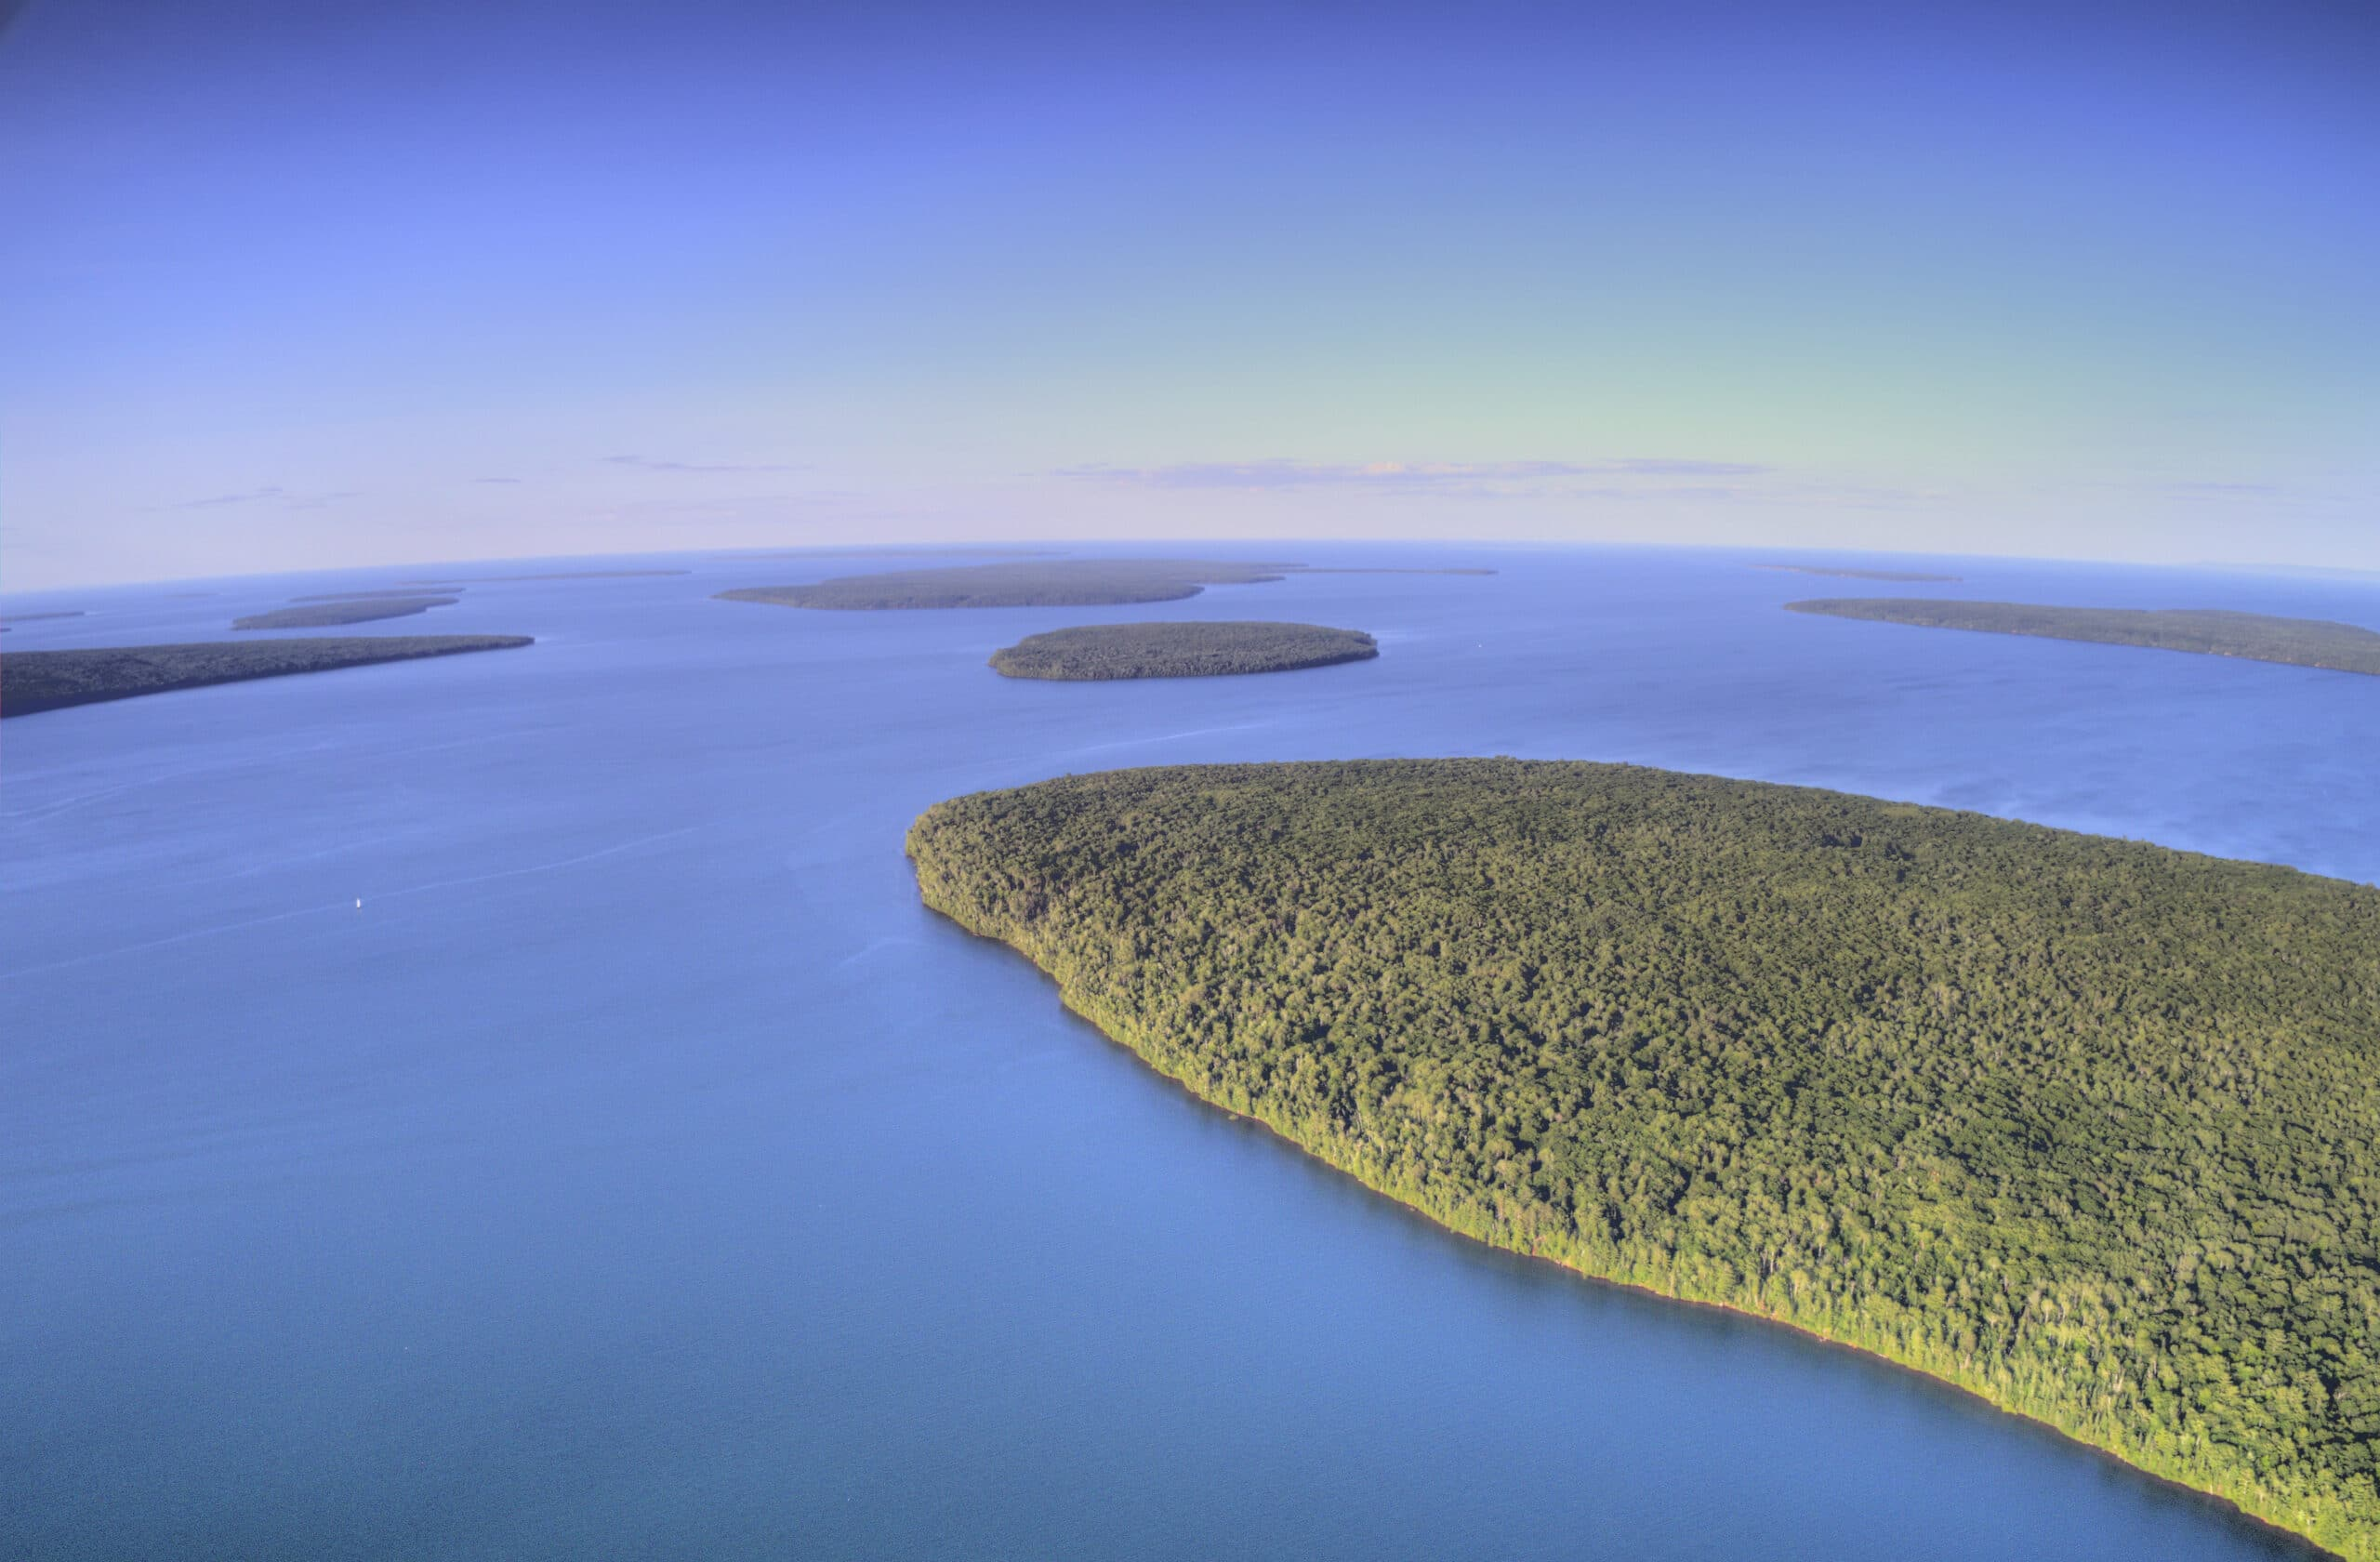 Aerial View of the Apostle Islands National Lakeshore in Lake Superior